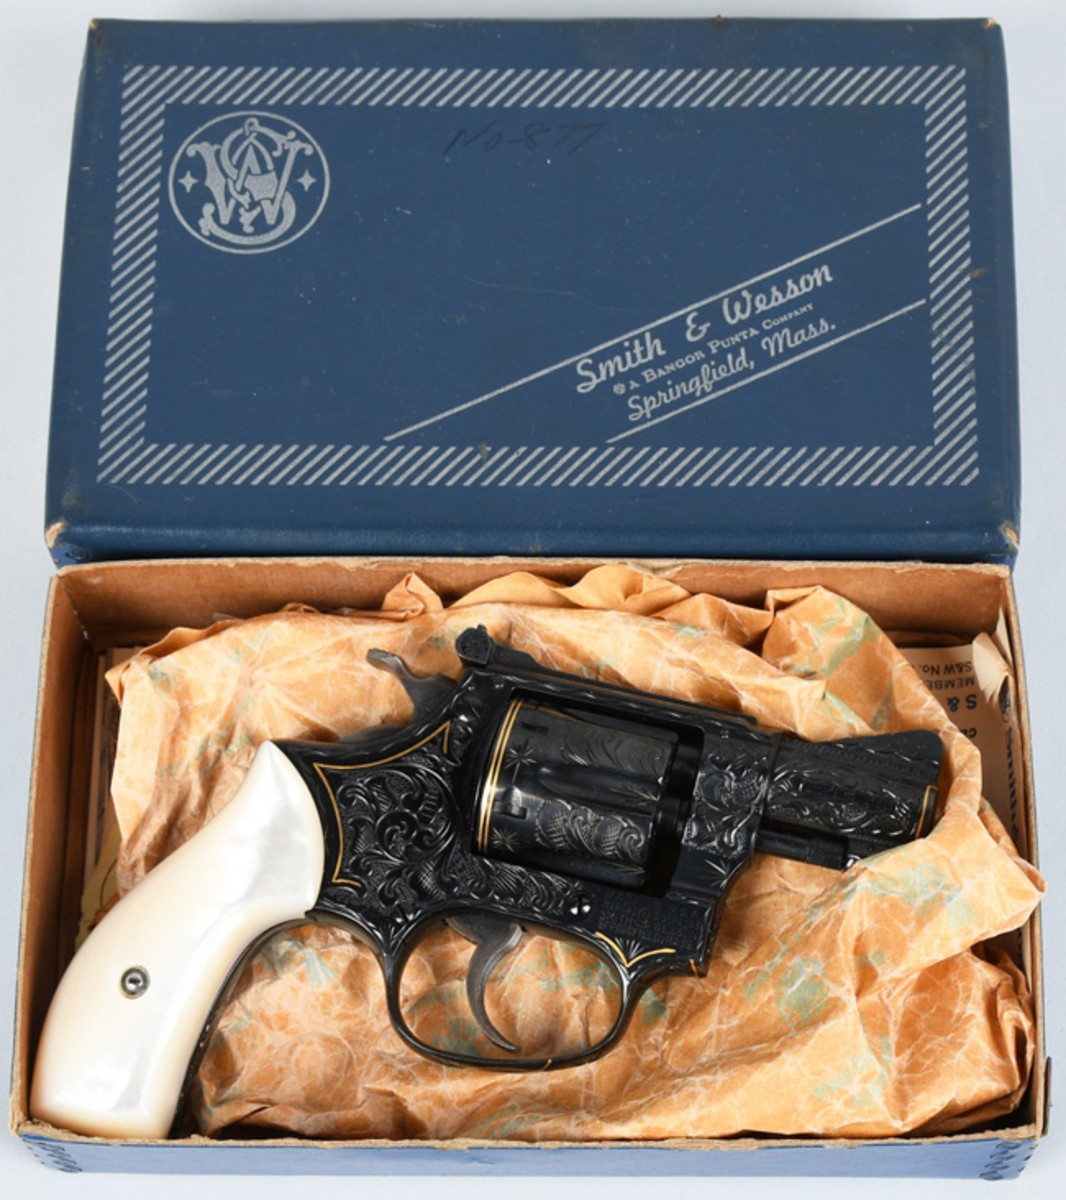 Smith & Wesson 6-shot double-action revolver with pearl grips and engraving by Billy Bates, $4,400